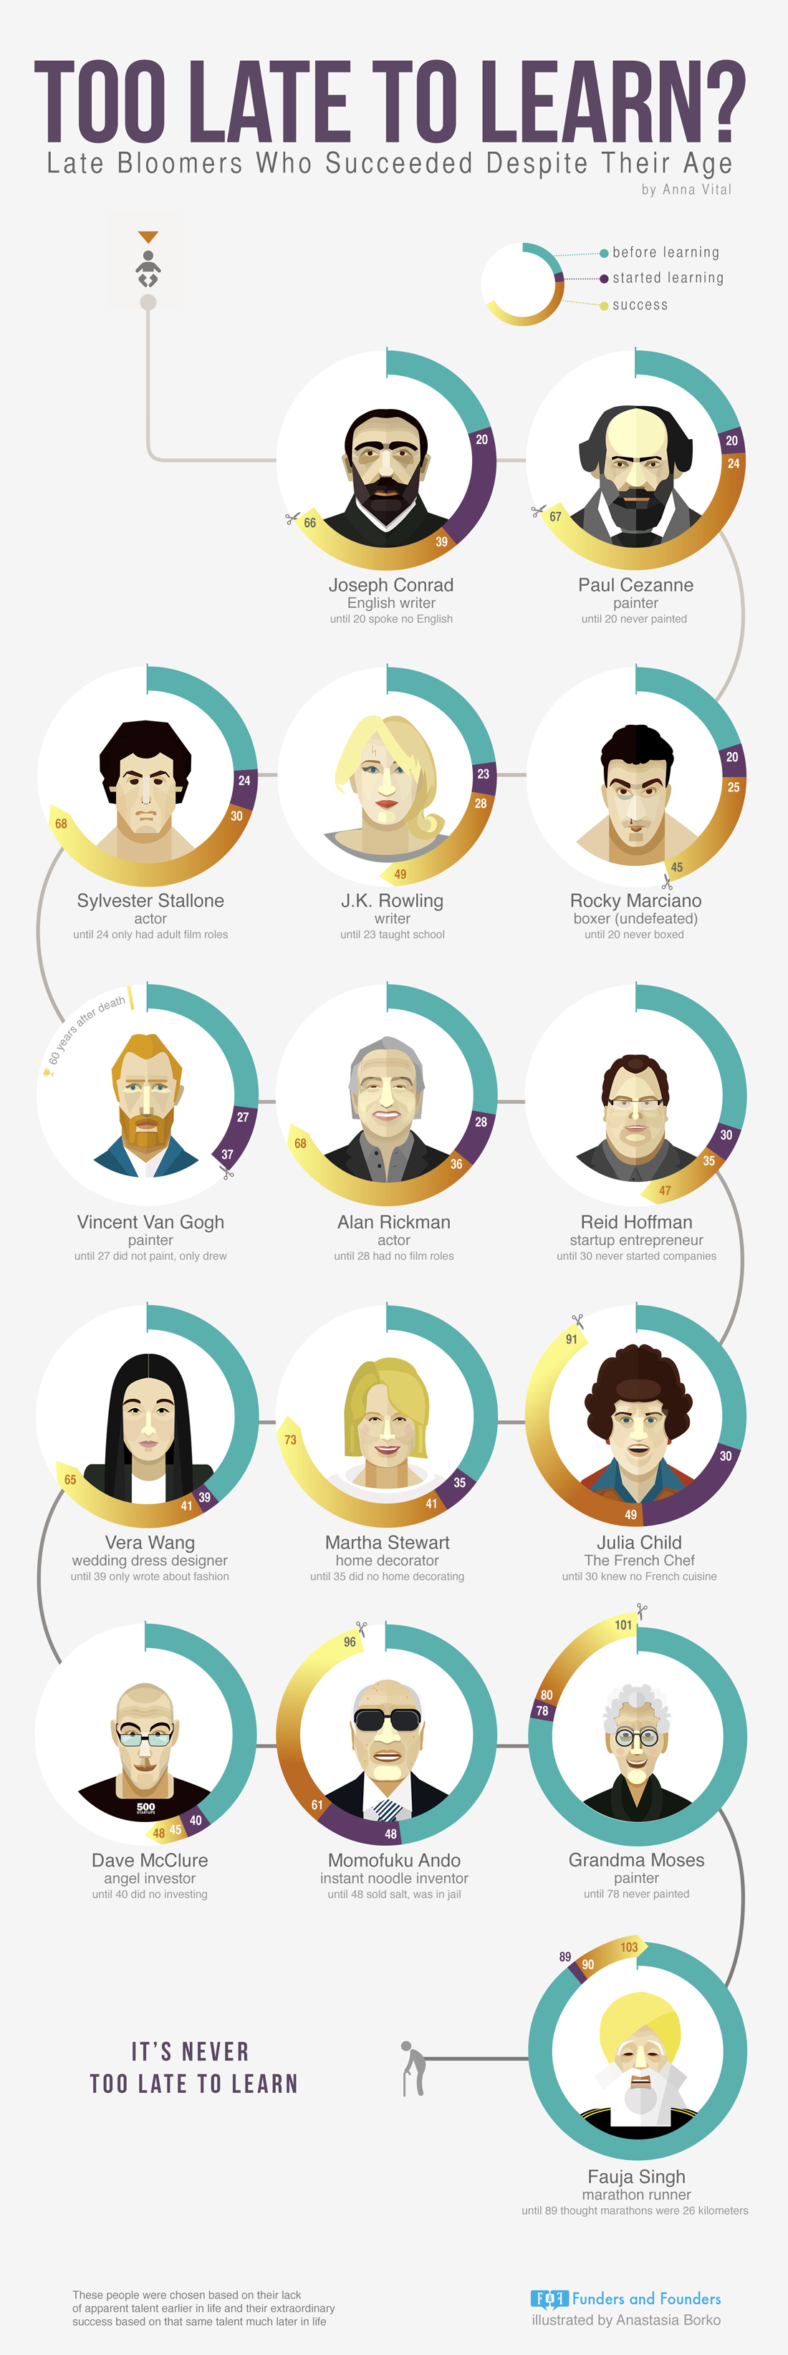 too late to learn late bloomers people who succeeded infographic 788x2355